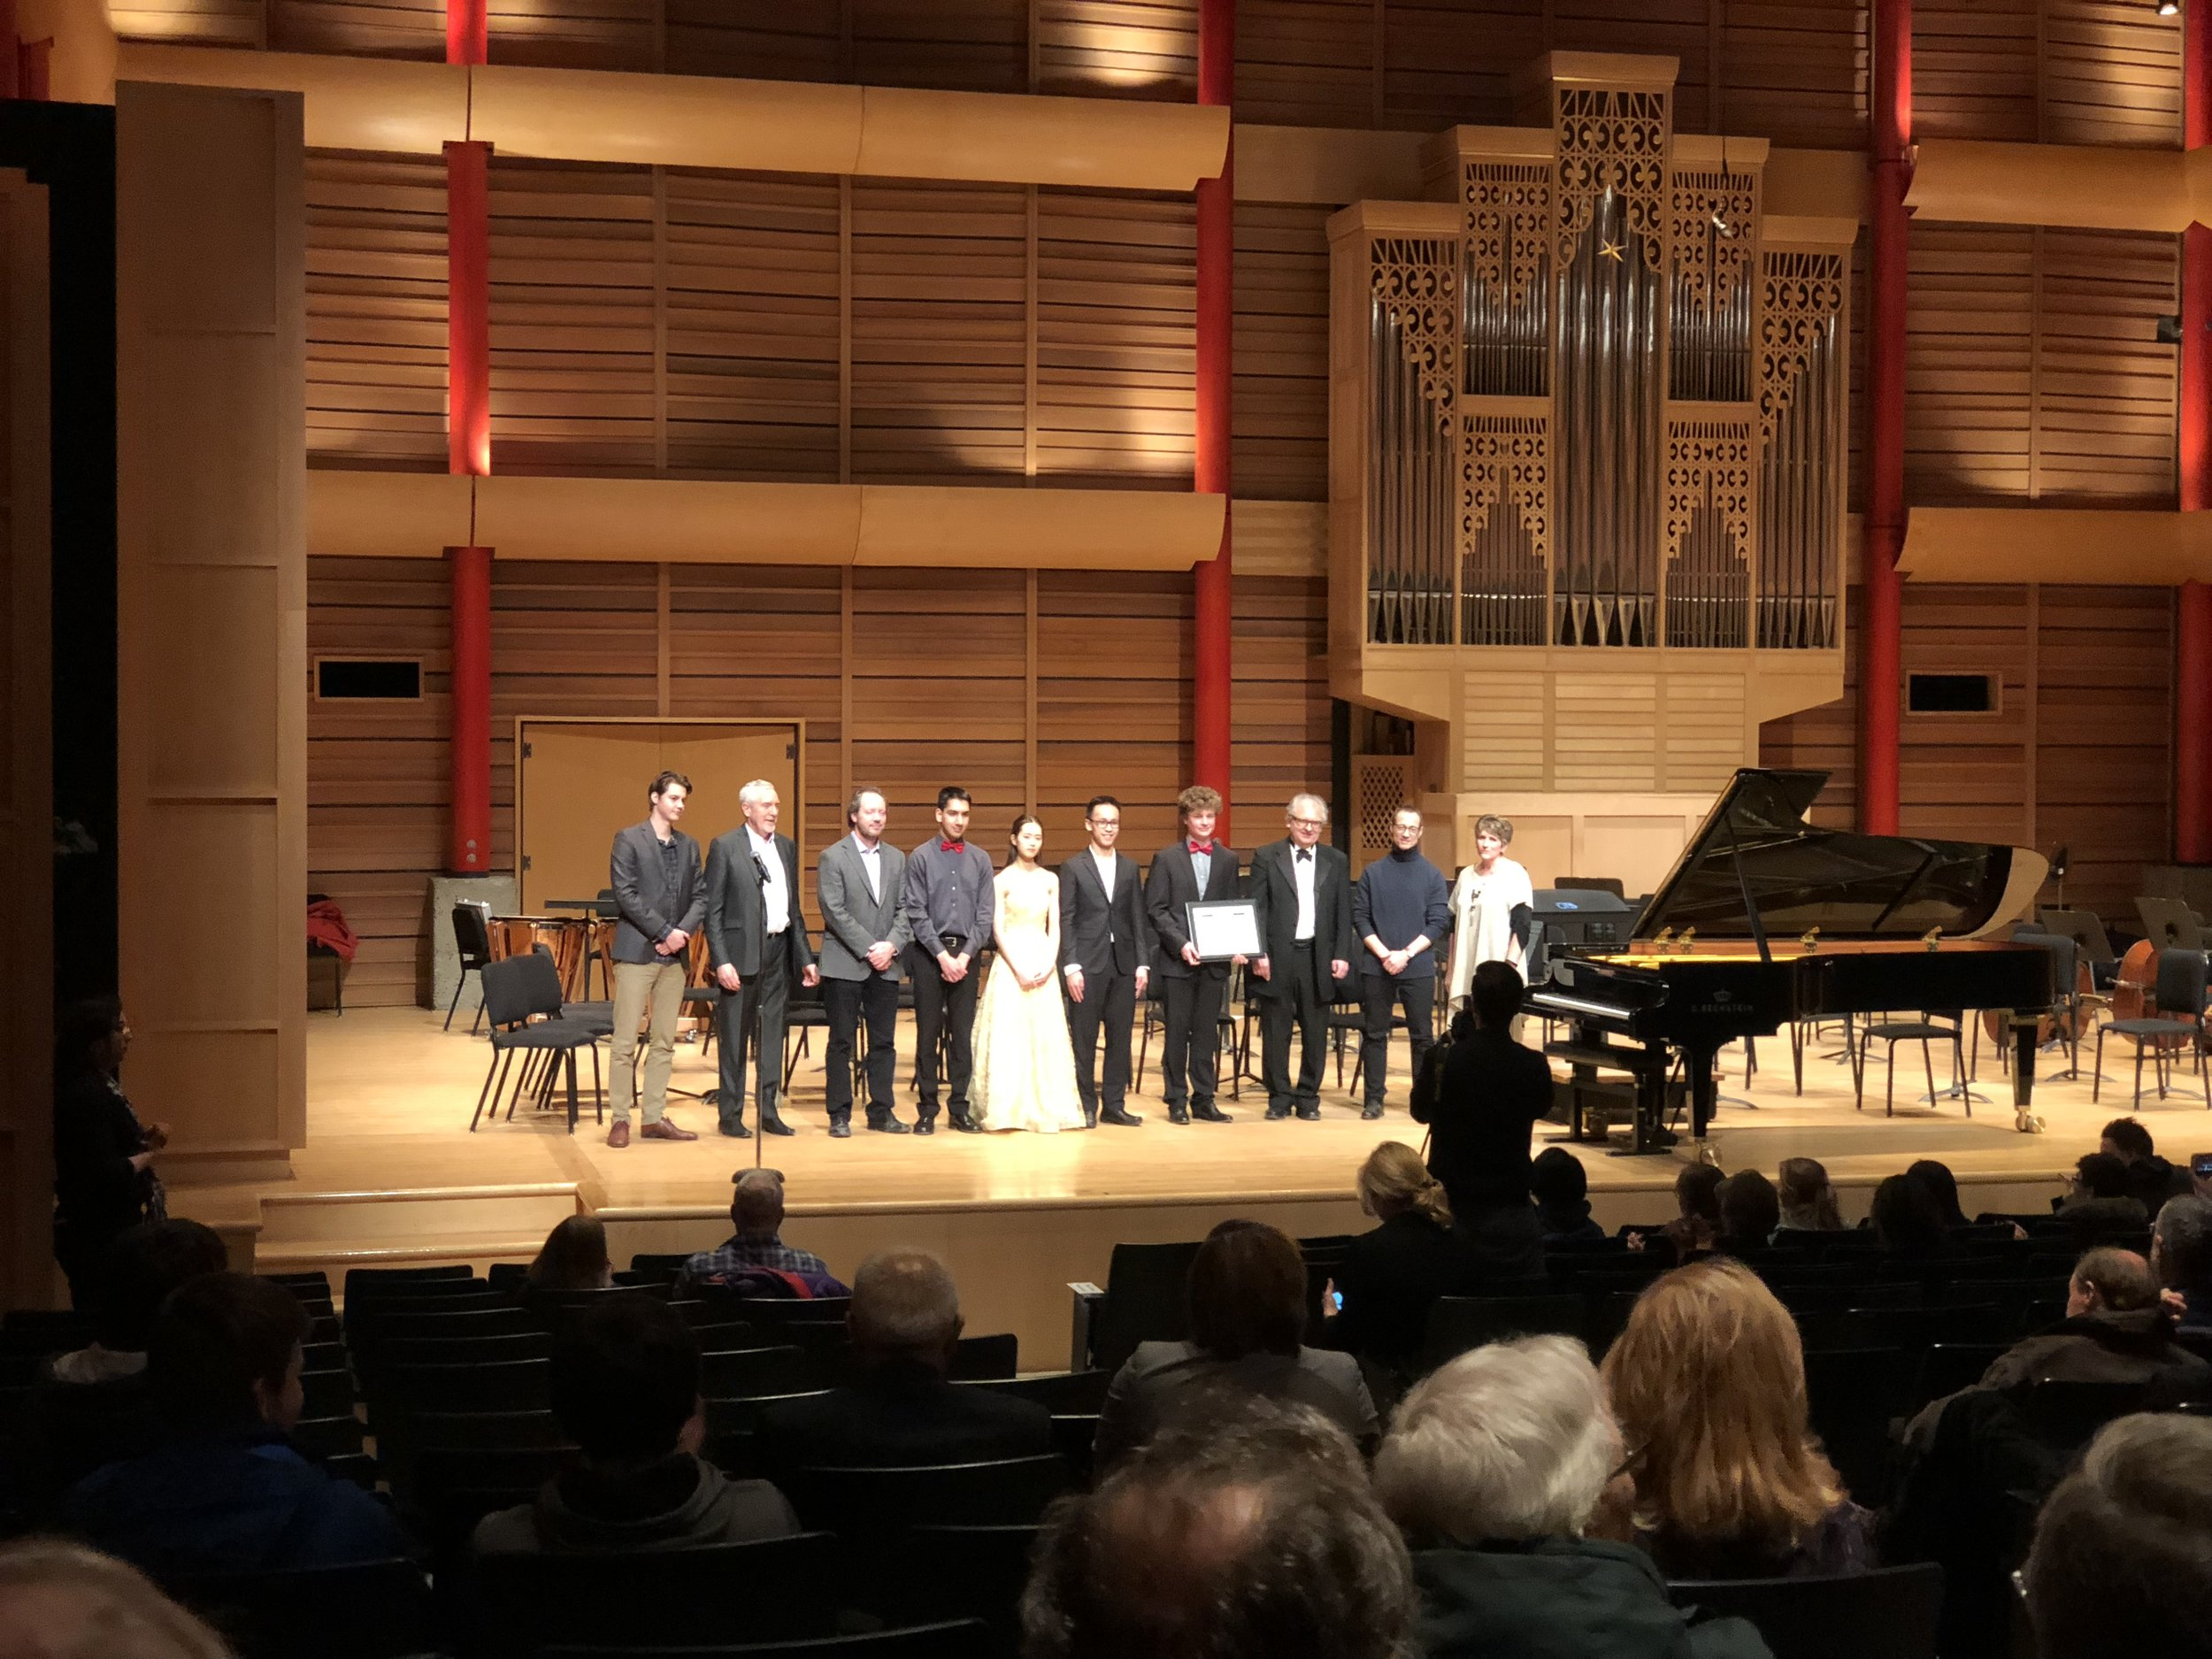 From left to right: Karl Hirzer (Resident Conductor of the CPO and Jury), Paul Dornian (President & CEO of the CPO and Jury), Brad Mahon (Director, MRU Conservatory), Daniel Dastoor (violin), Sua Kwoun (cello), Cameron Wong (oboe), Daniel Szefer (piano), Edmond Agopian (Professor,Conductor and Violinist), Bruce Barton (SCPA Professor & Director), Joelle Welling (SCPA Chair & Senior Instructor).